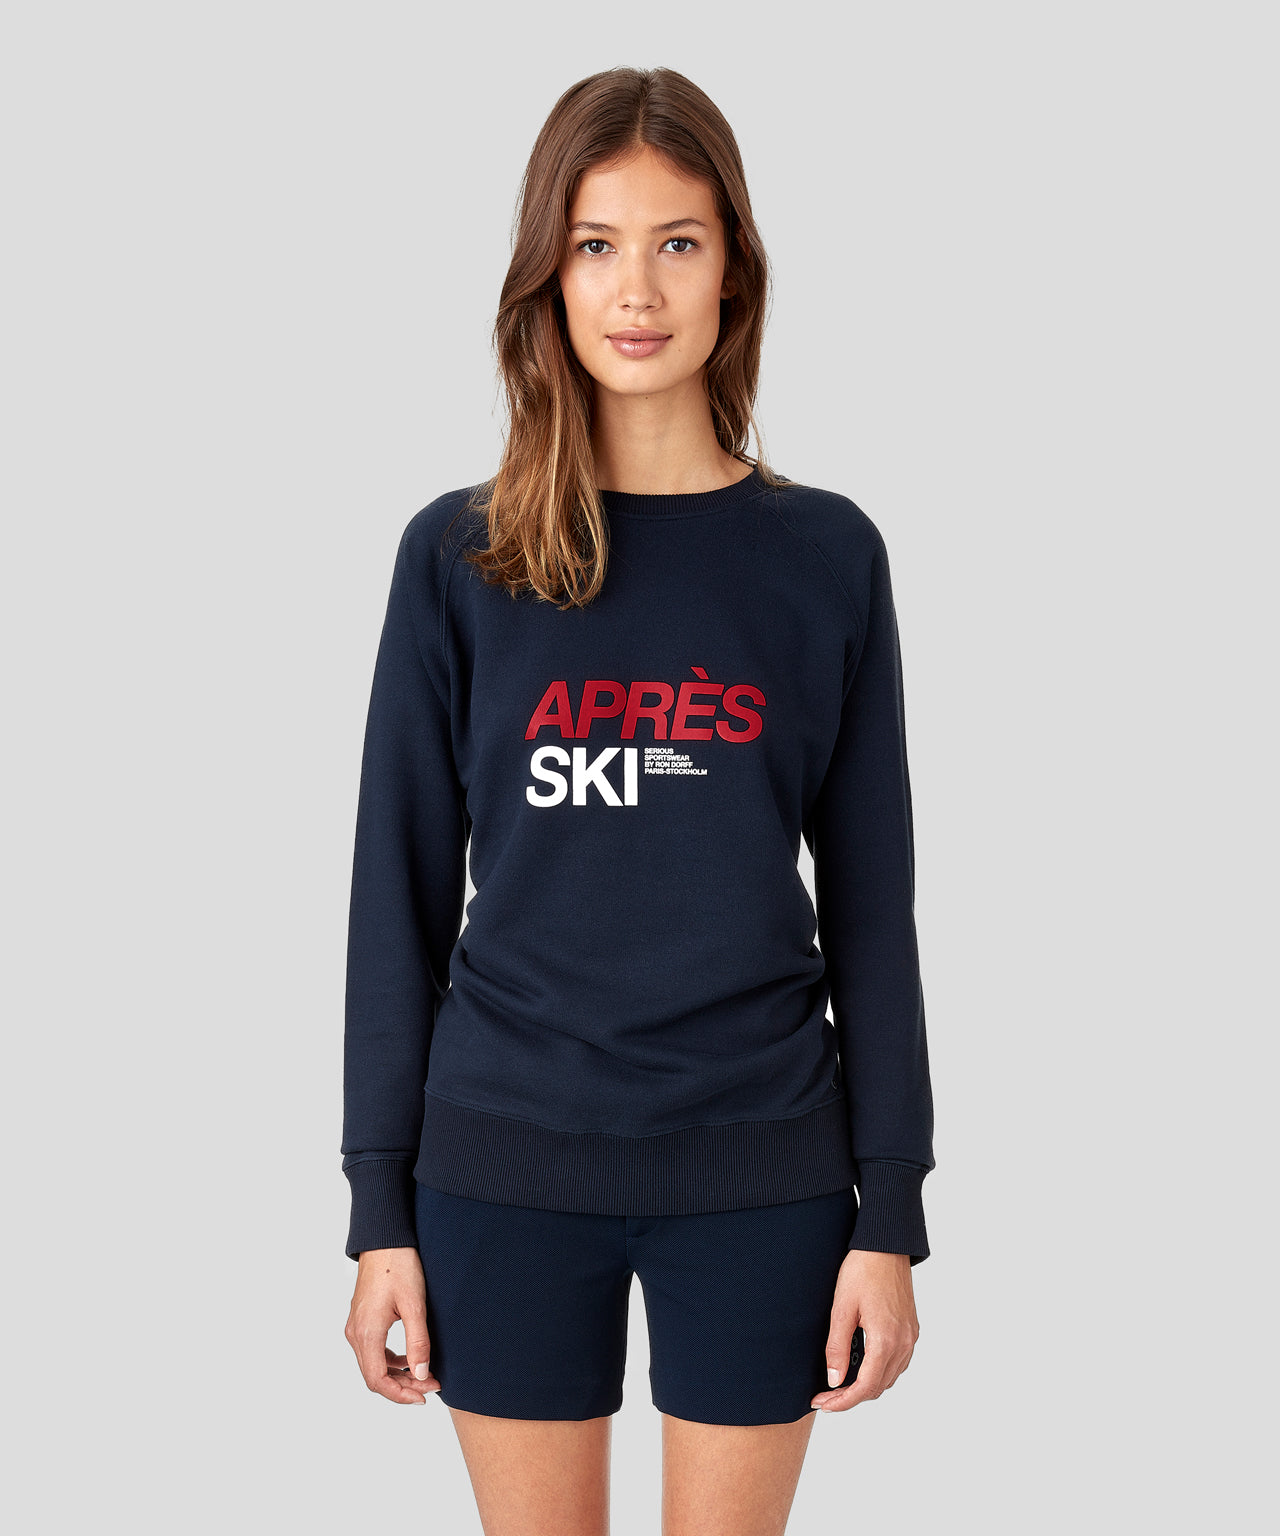 Sweatshirt APRES SKI His For Her - navy